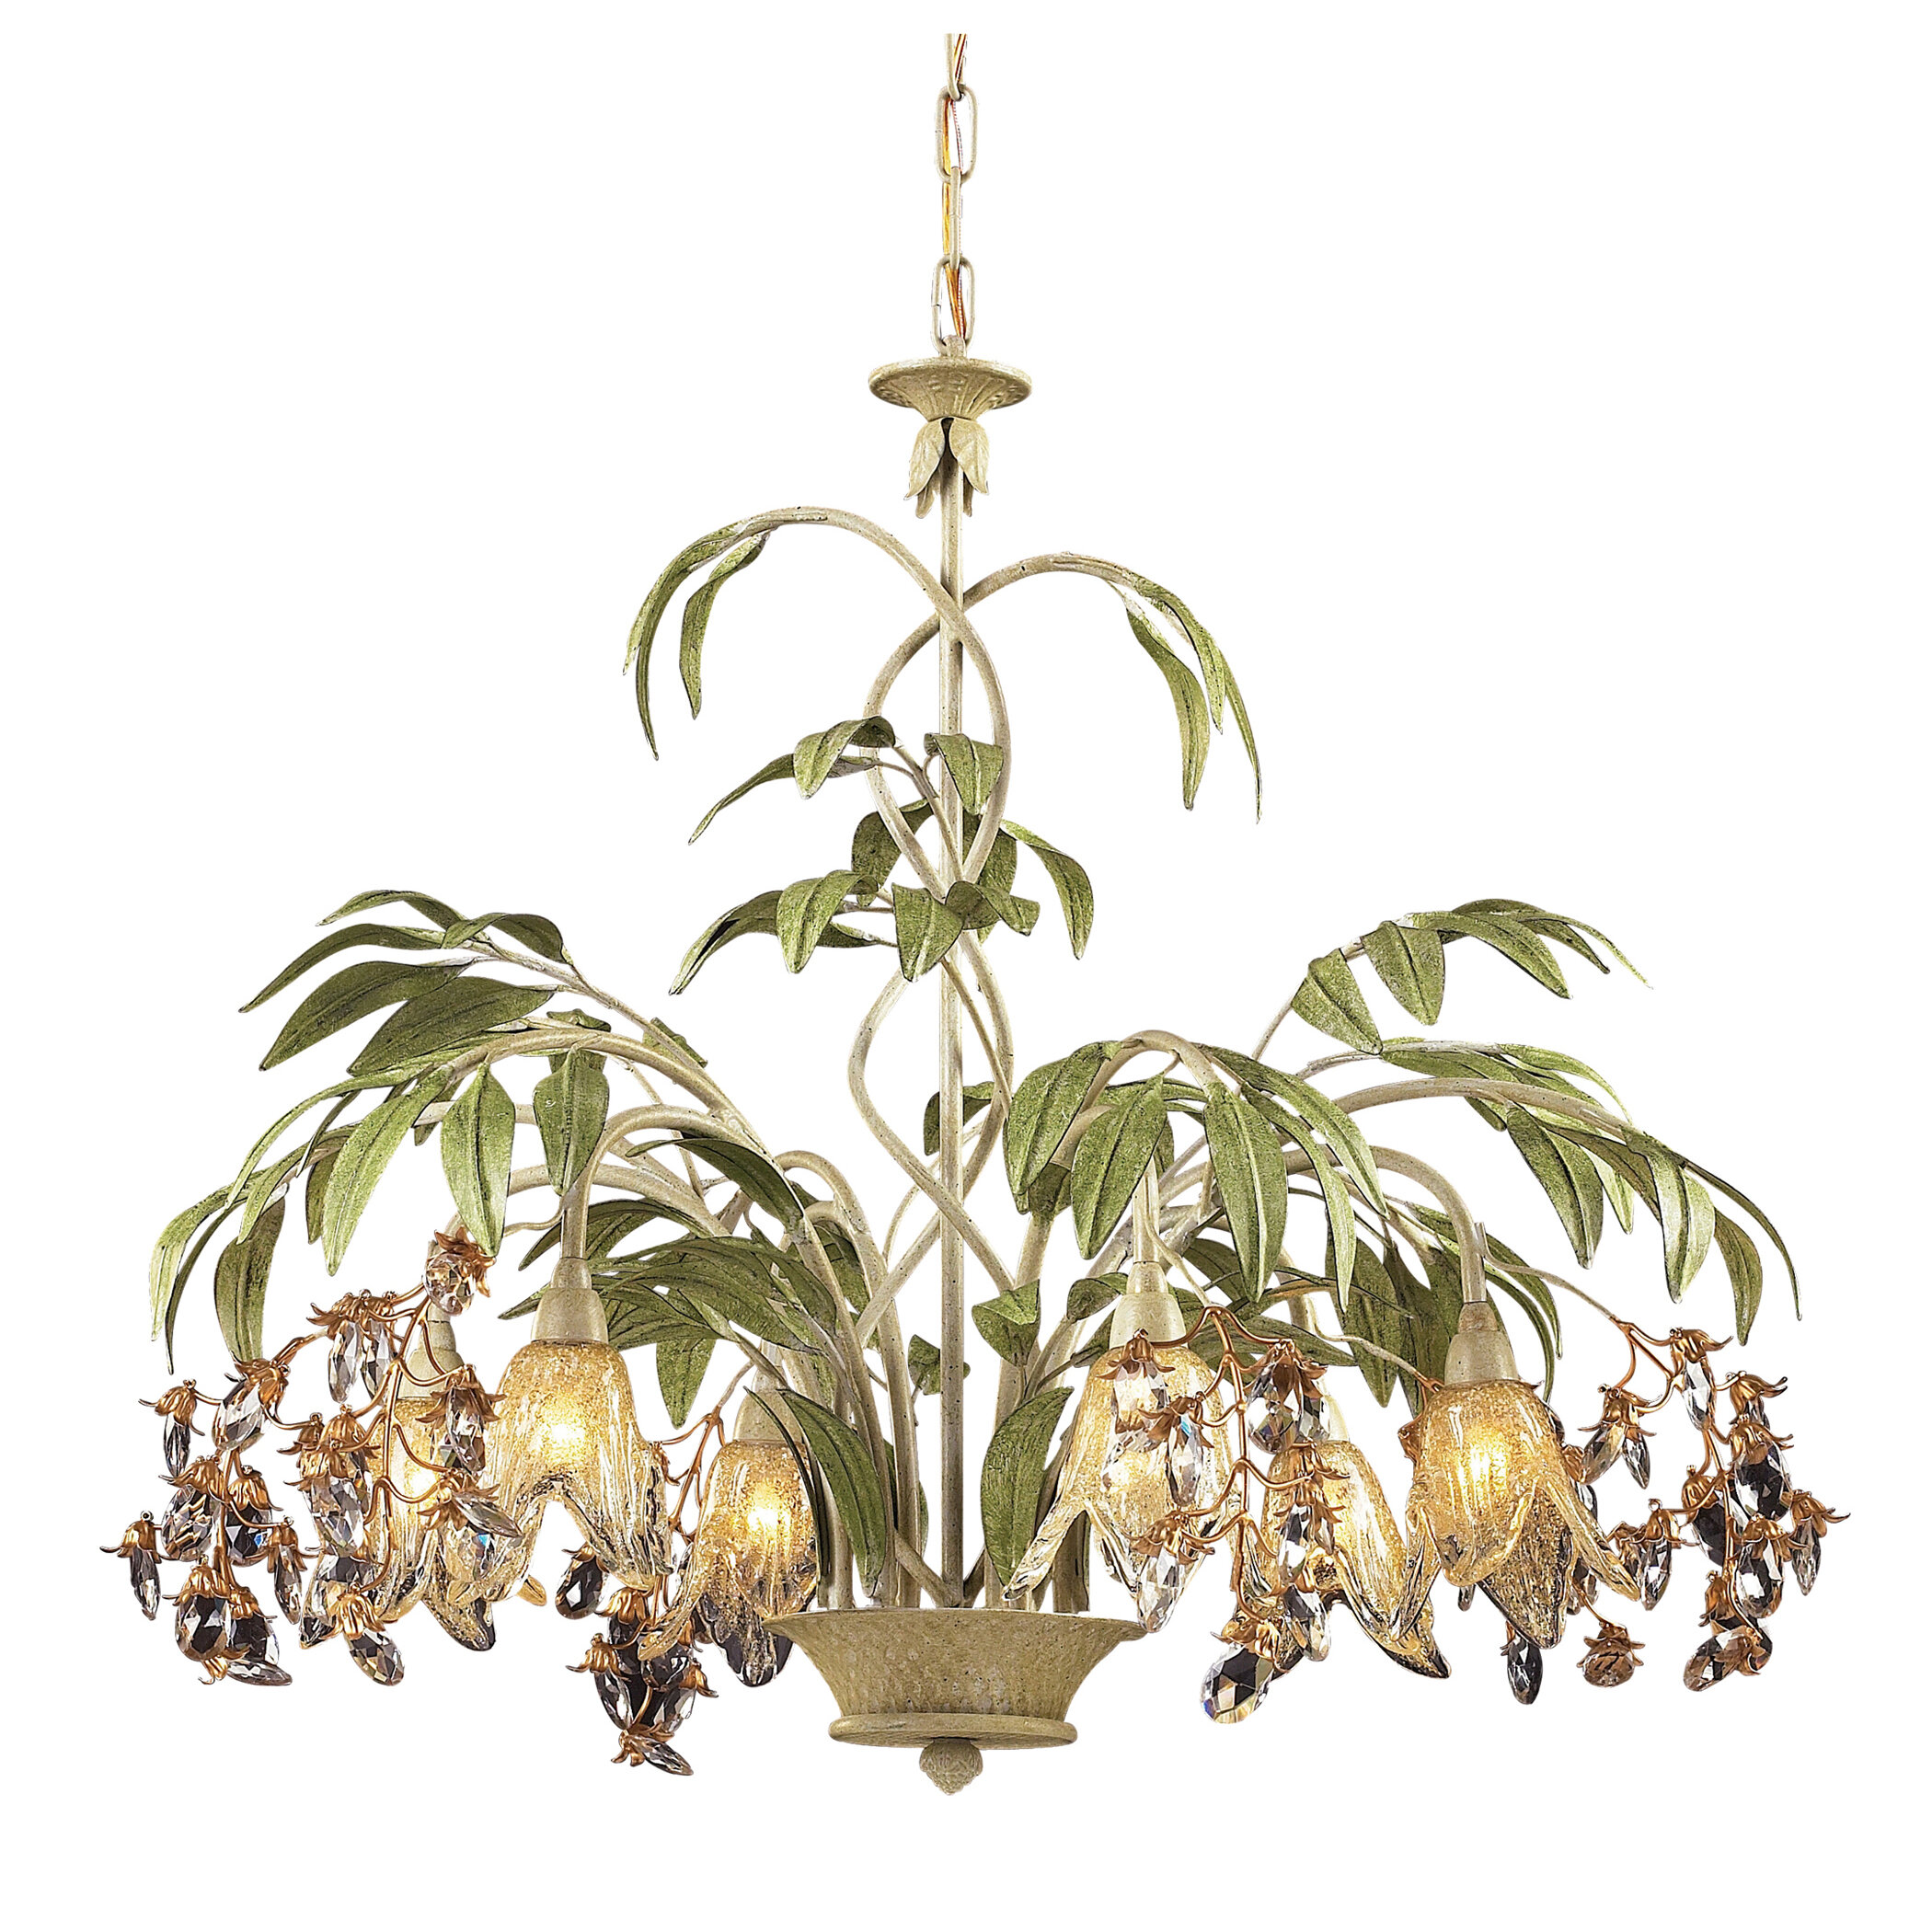 light liana style orb usa chandelier fixture ball pendant luxe product vine hand in made